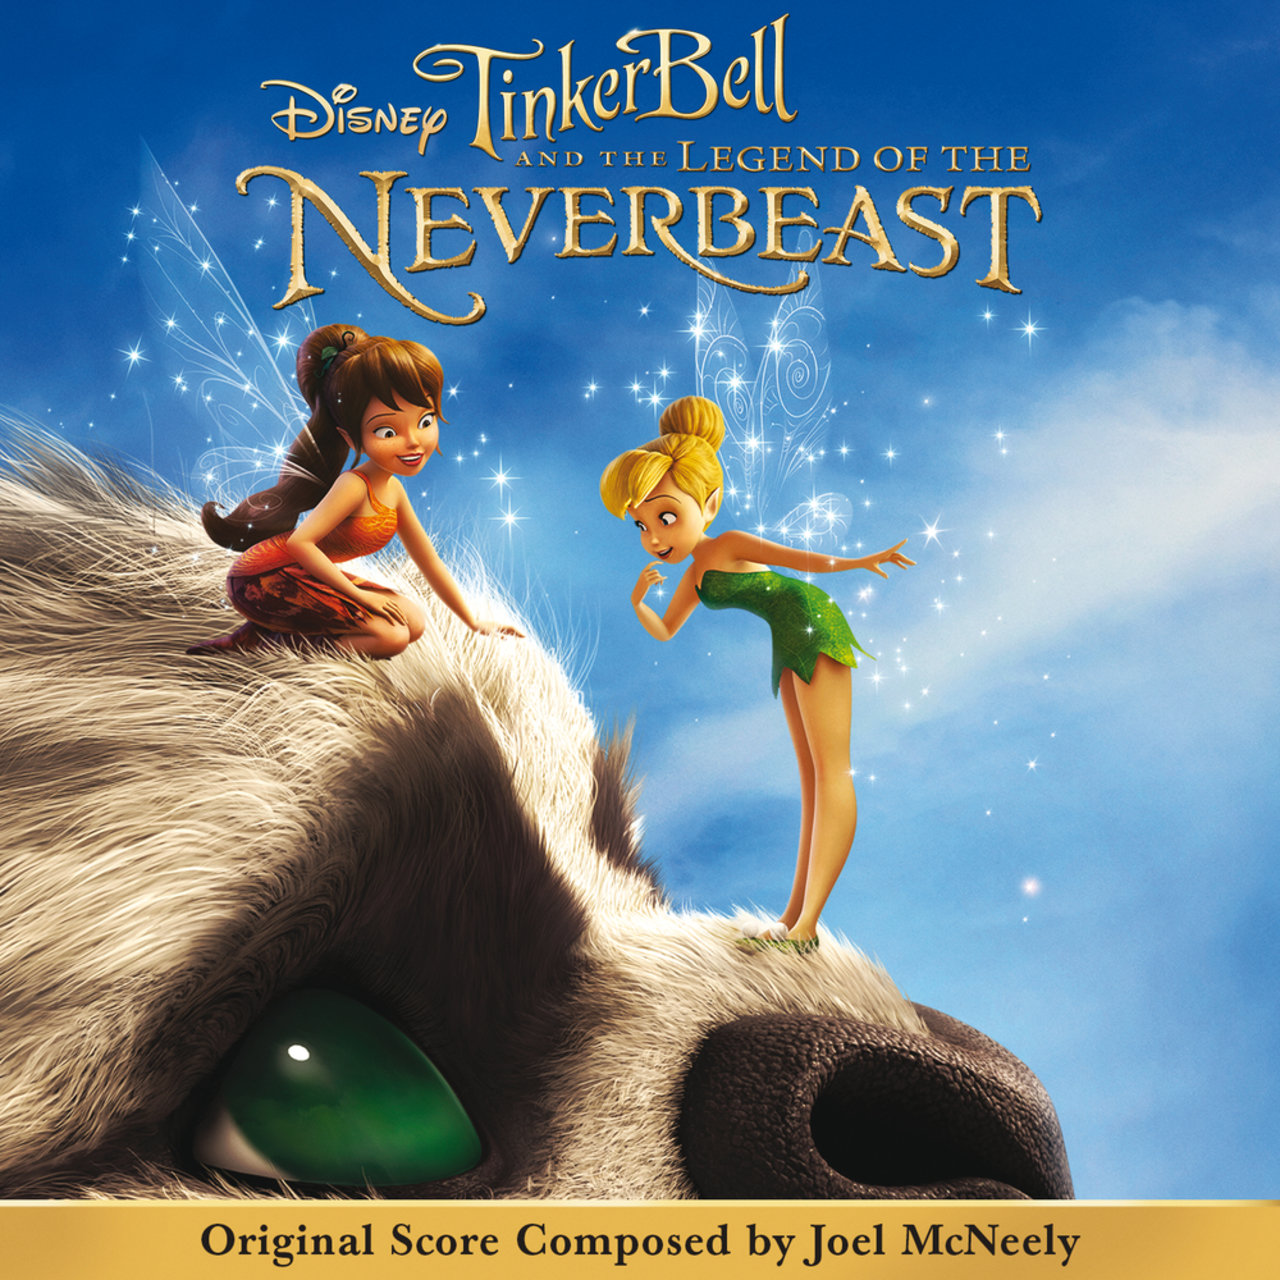 clochette tinkerbell creature legendaire neverbeast legend bande originale disney soundtrack